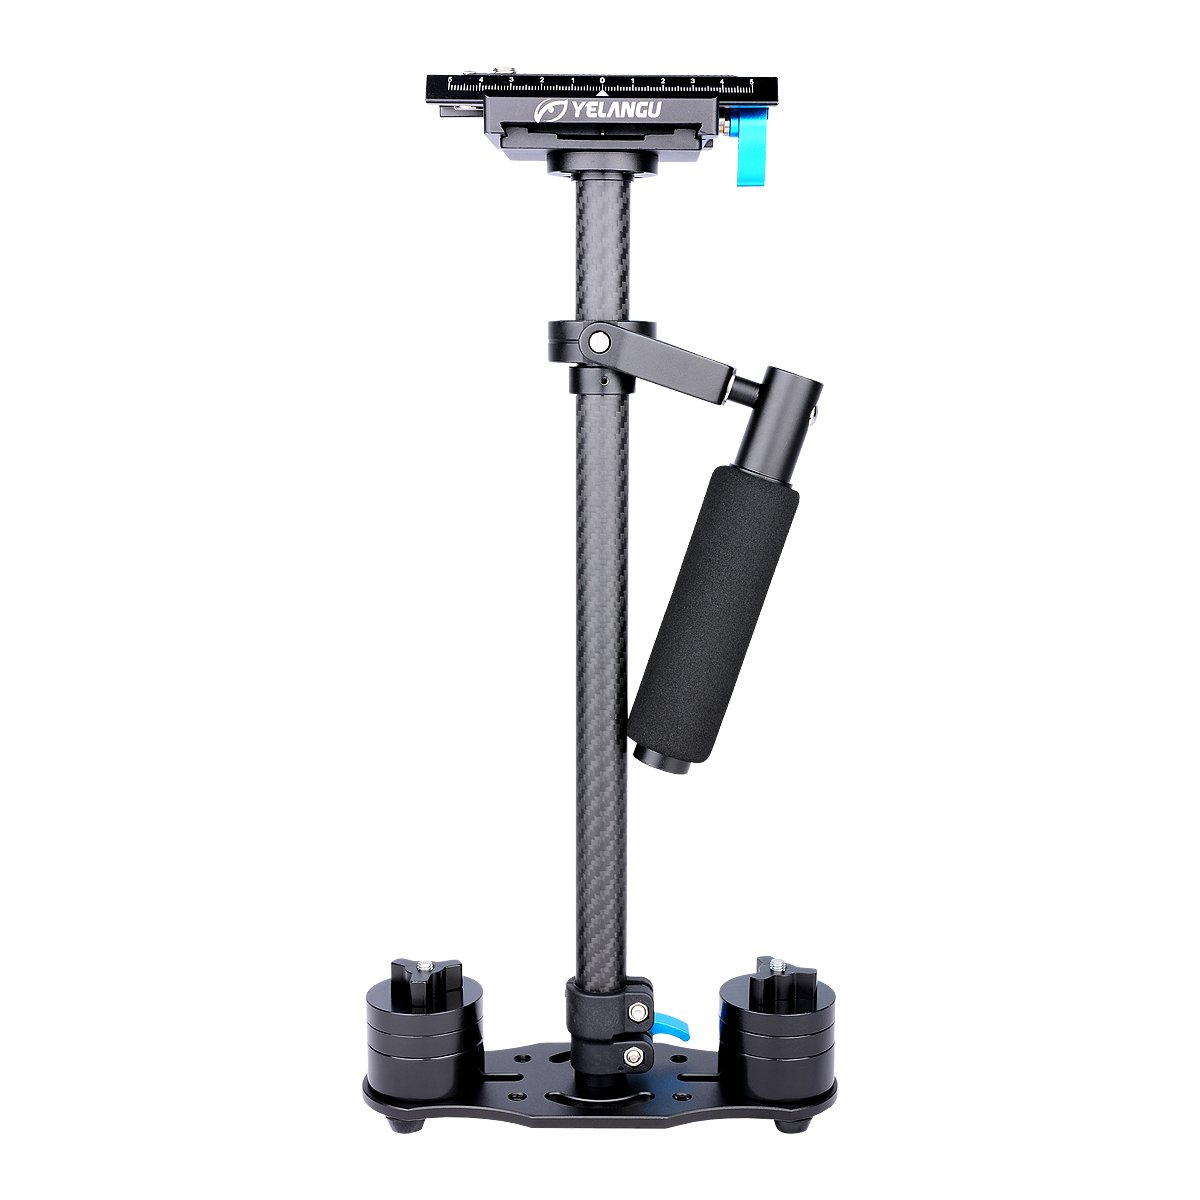 YELANGU Carbon Fiber 24''/60cm Handheld Stabilizer with 1/4'' and 3/8'' Screw for DSLR and Video Cameras up to 6.6lbs/3kg(Black)